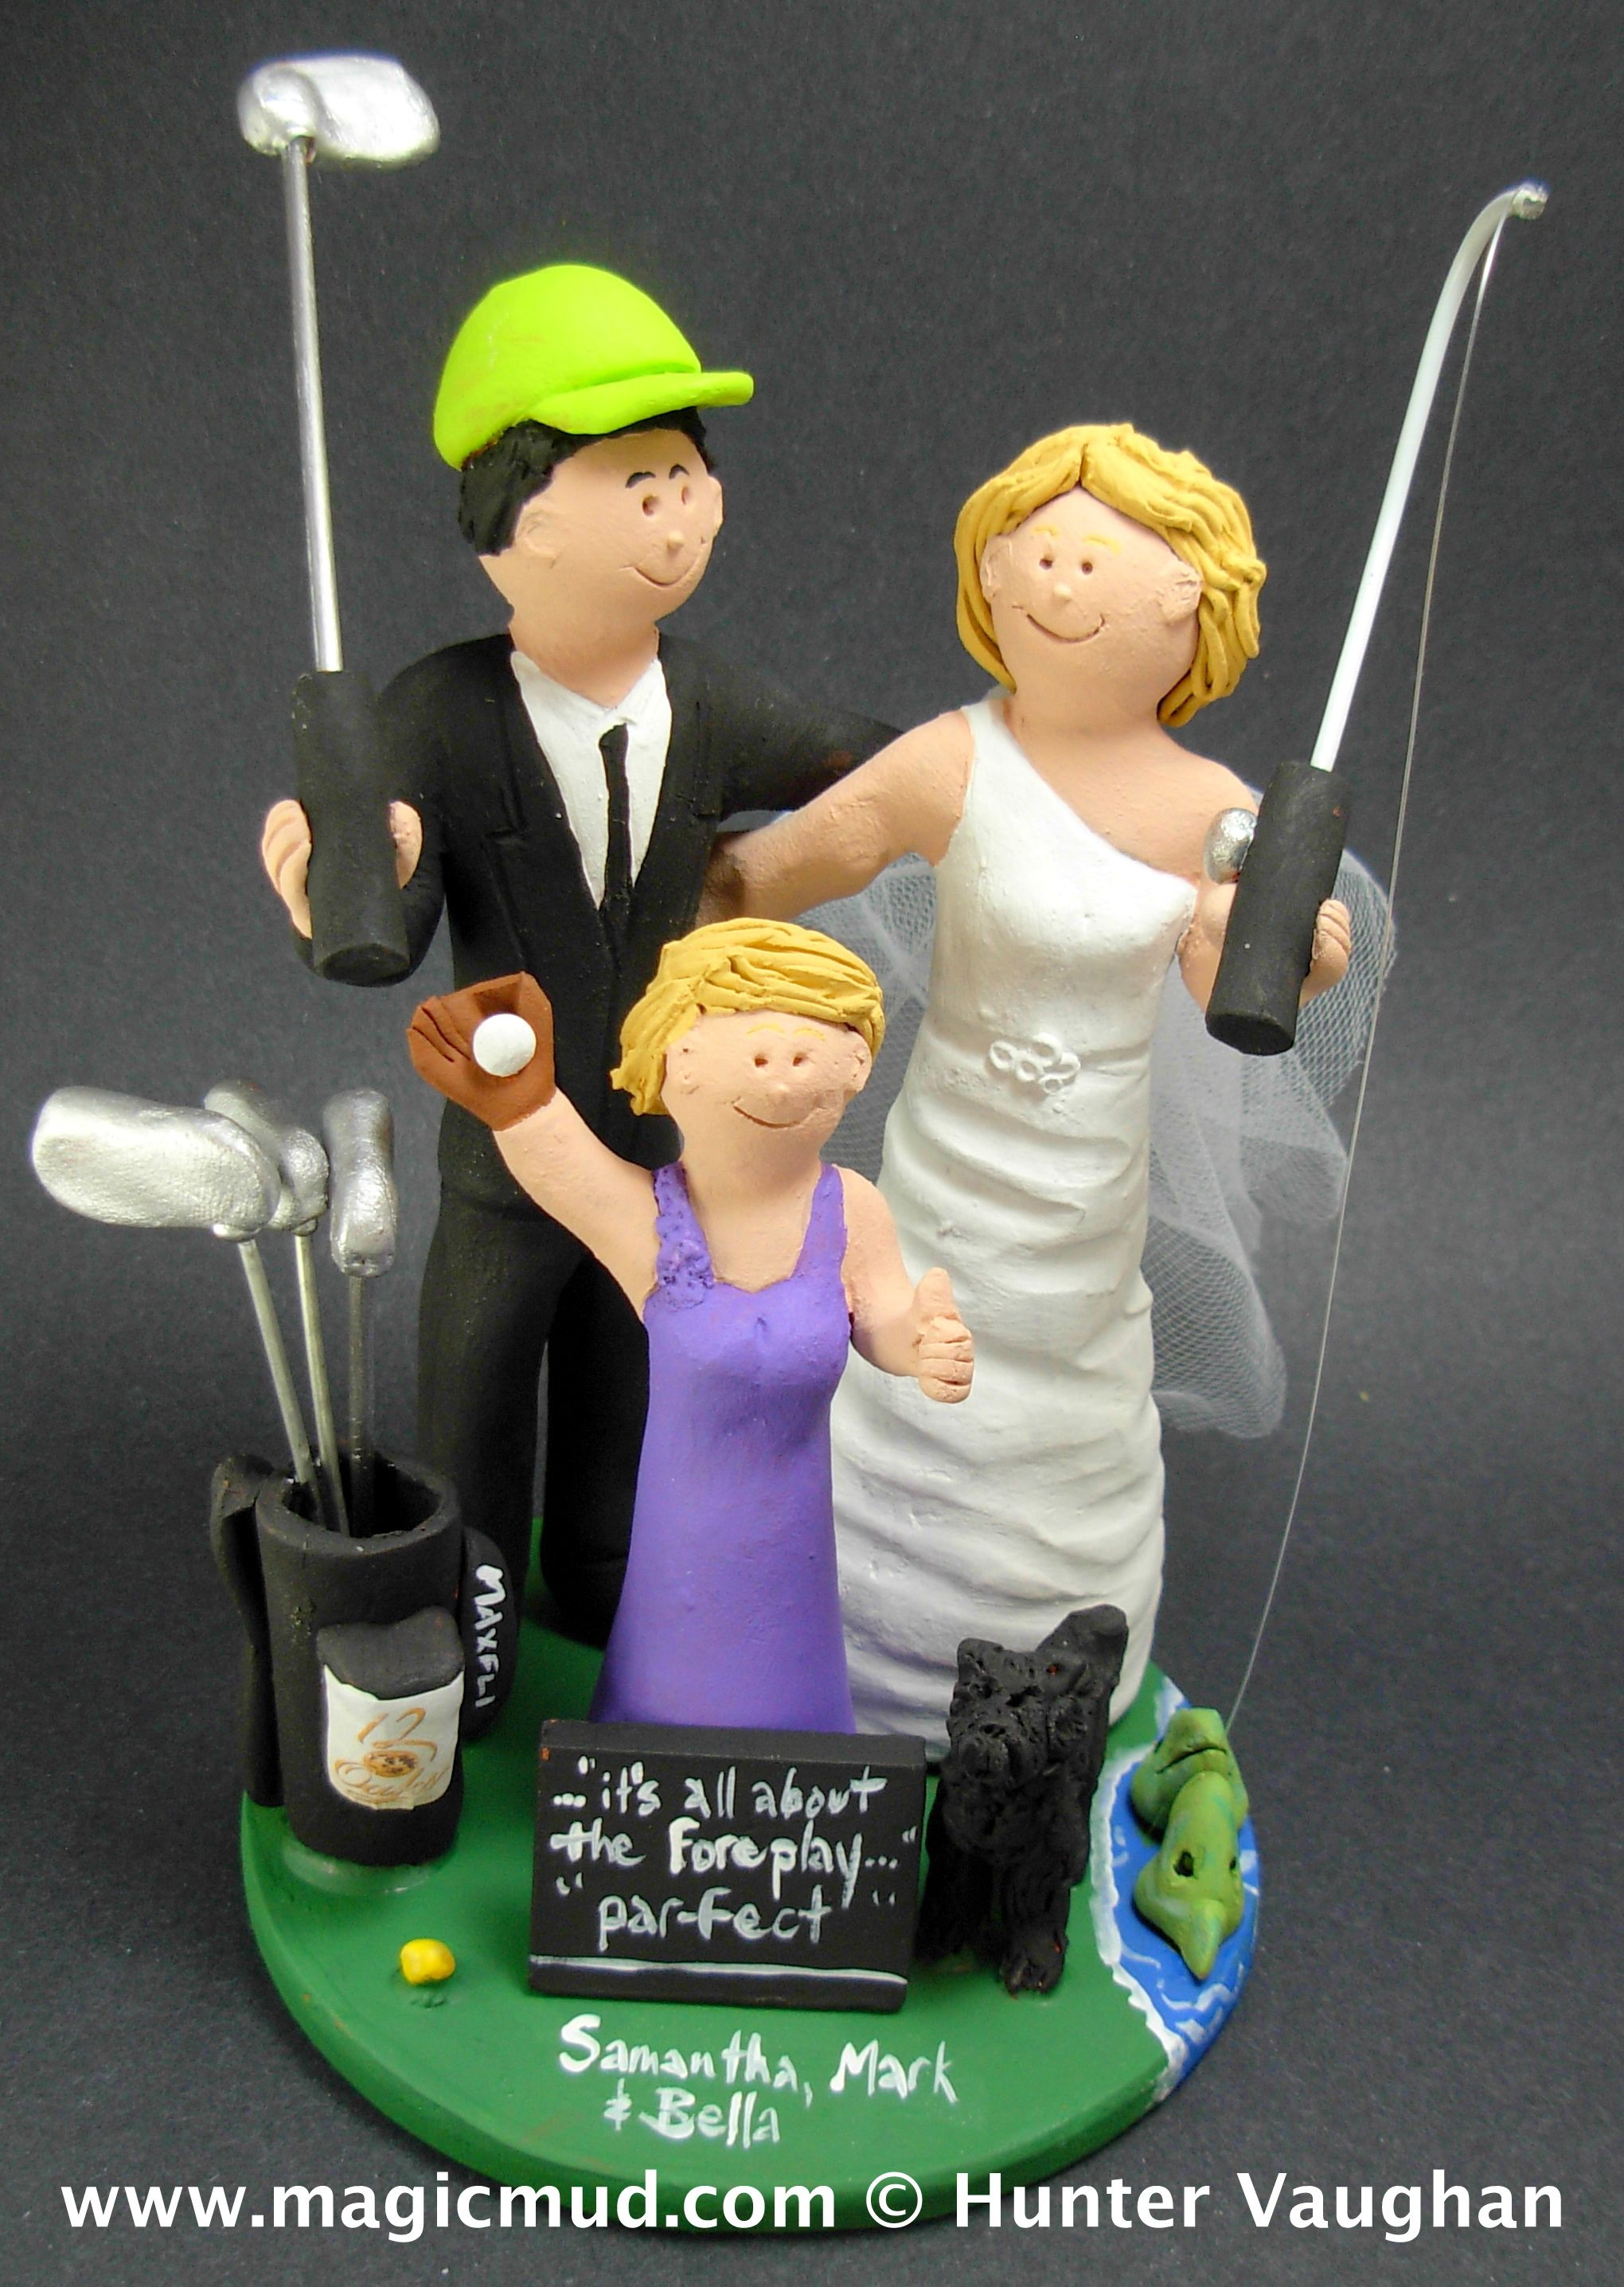 Daughter with Bride and Groom Wedding Cake Topper 1 800 231 9814